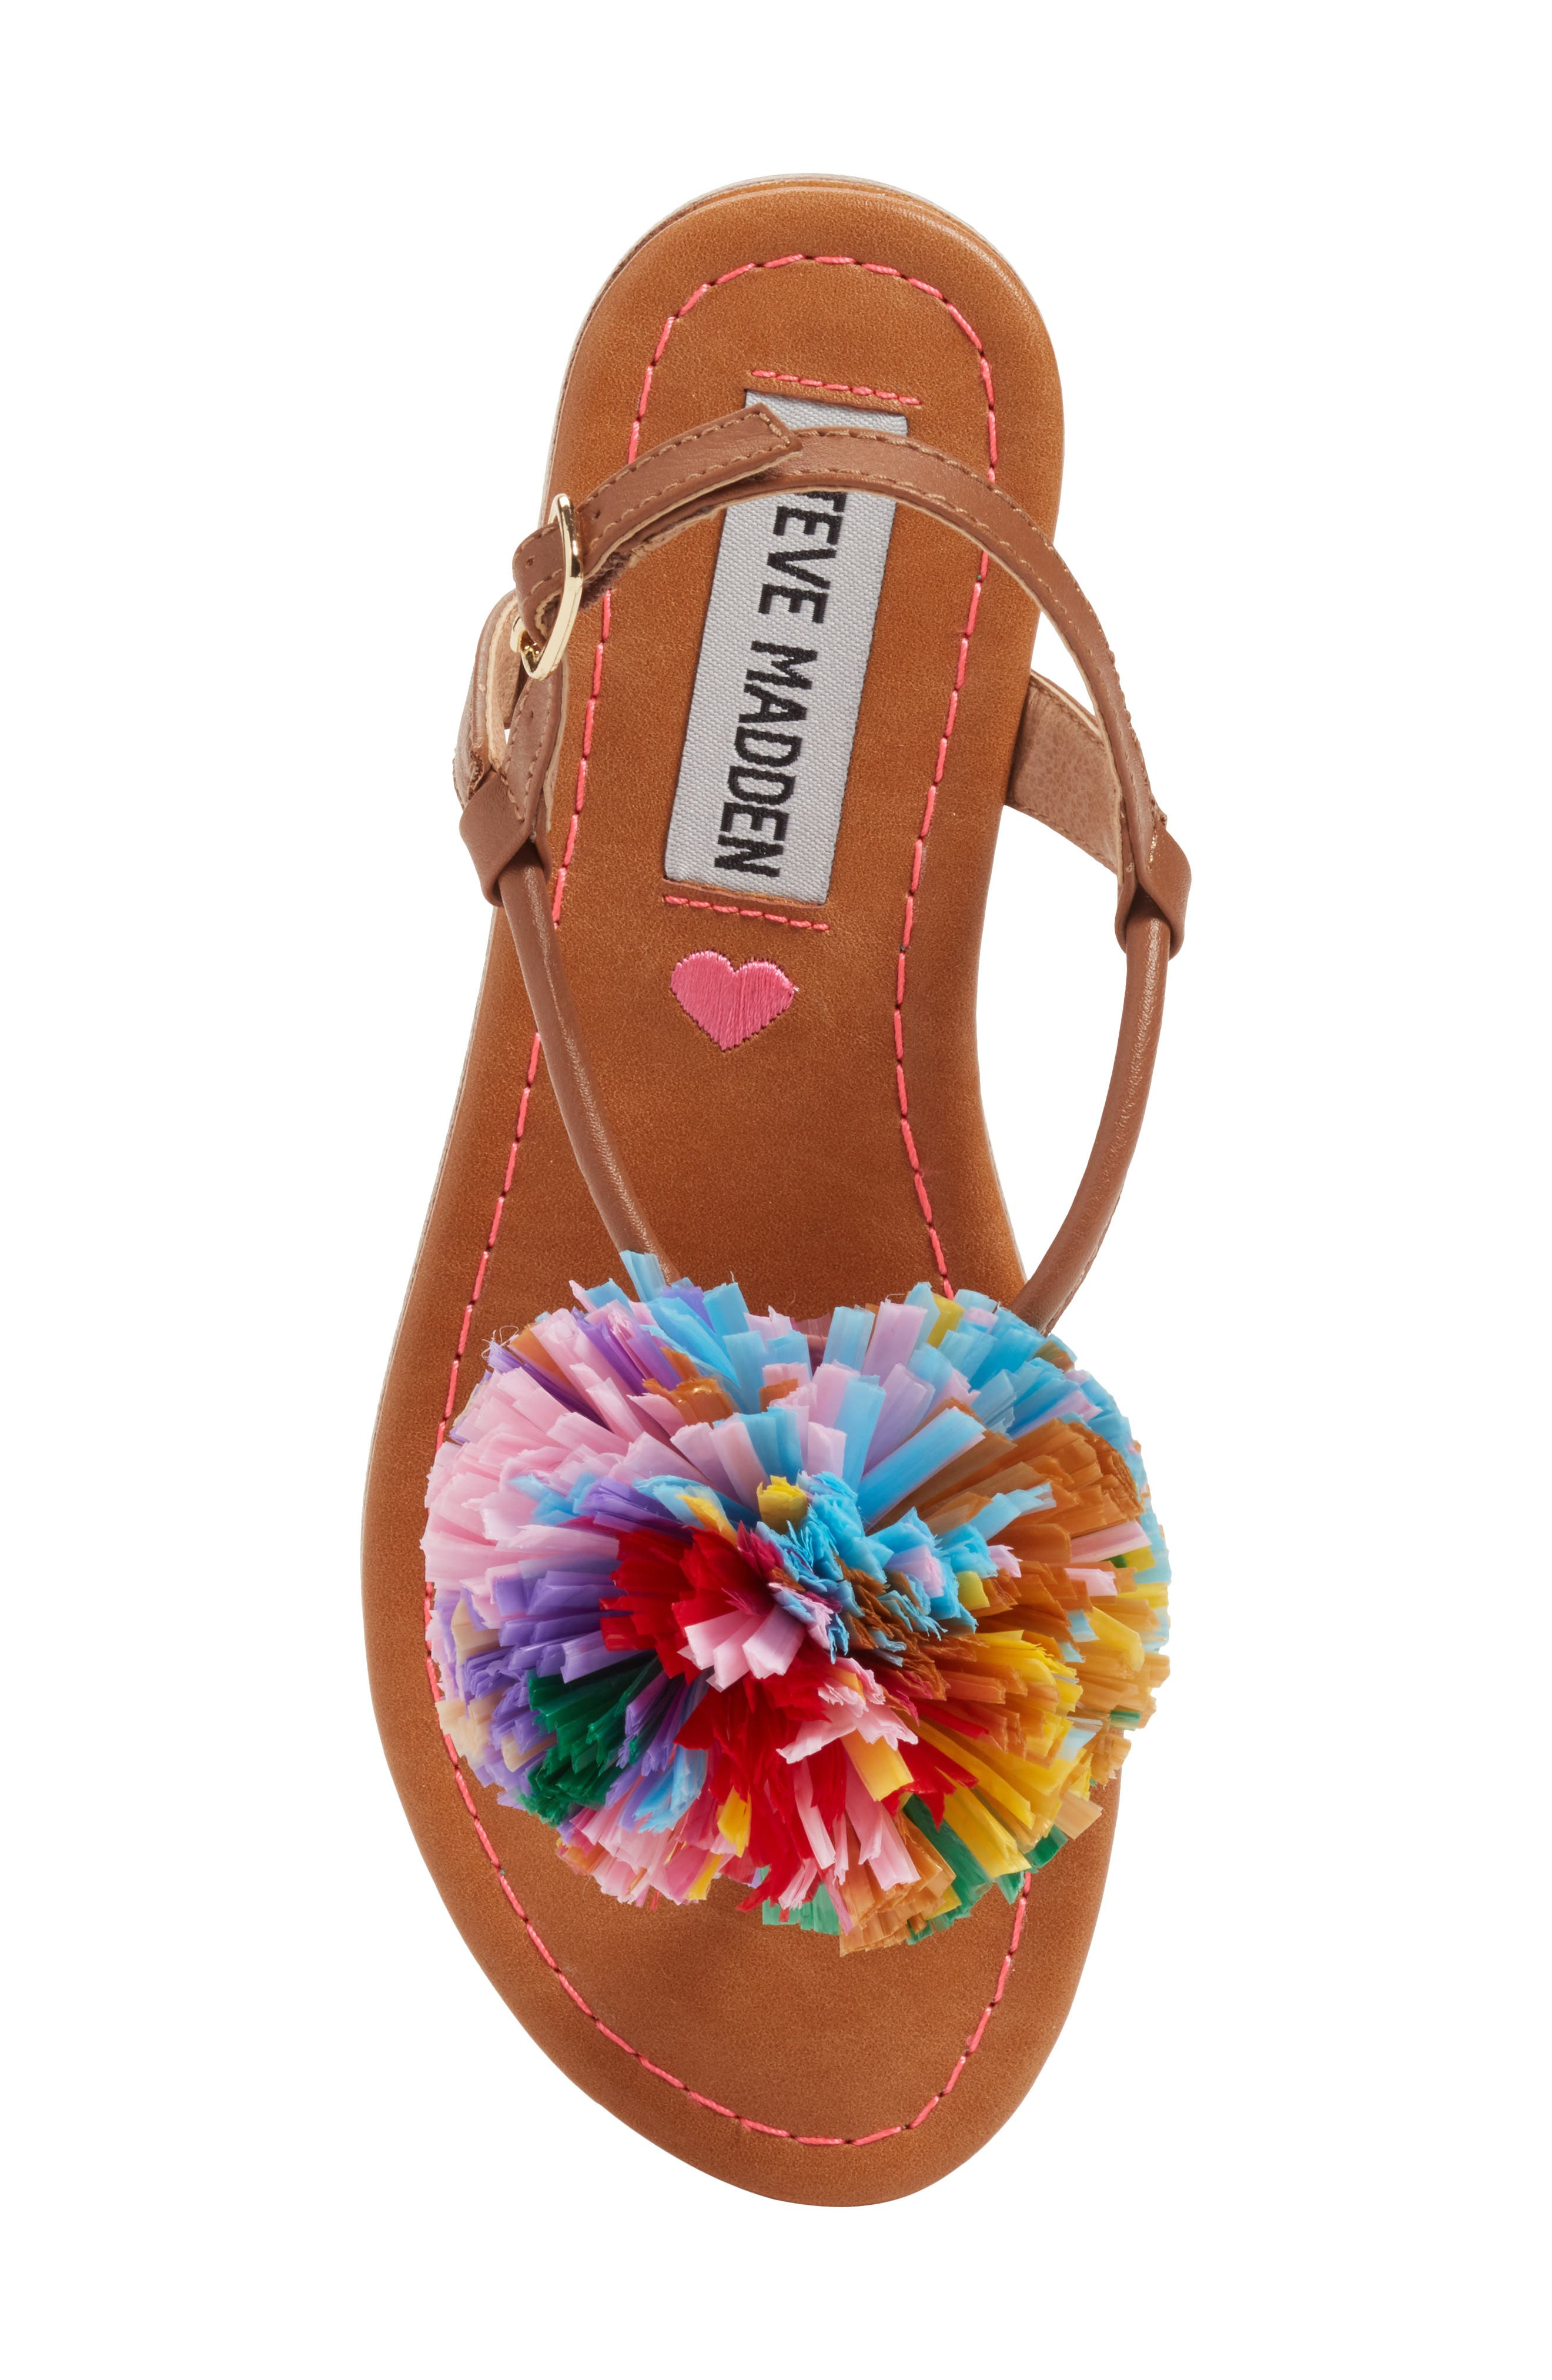 JCherry Pompom Sandal,                             Alternate thumbnail 5, color,